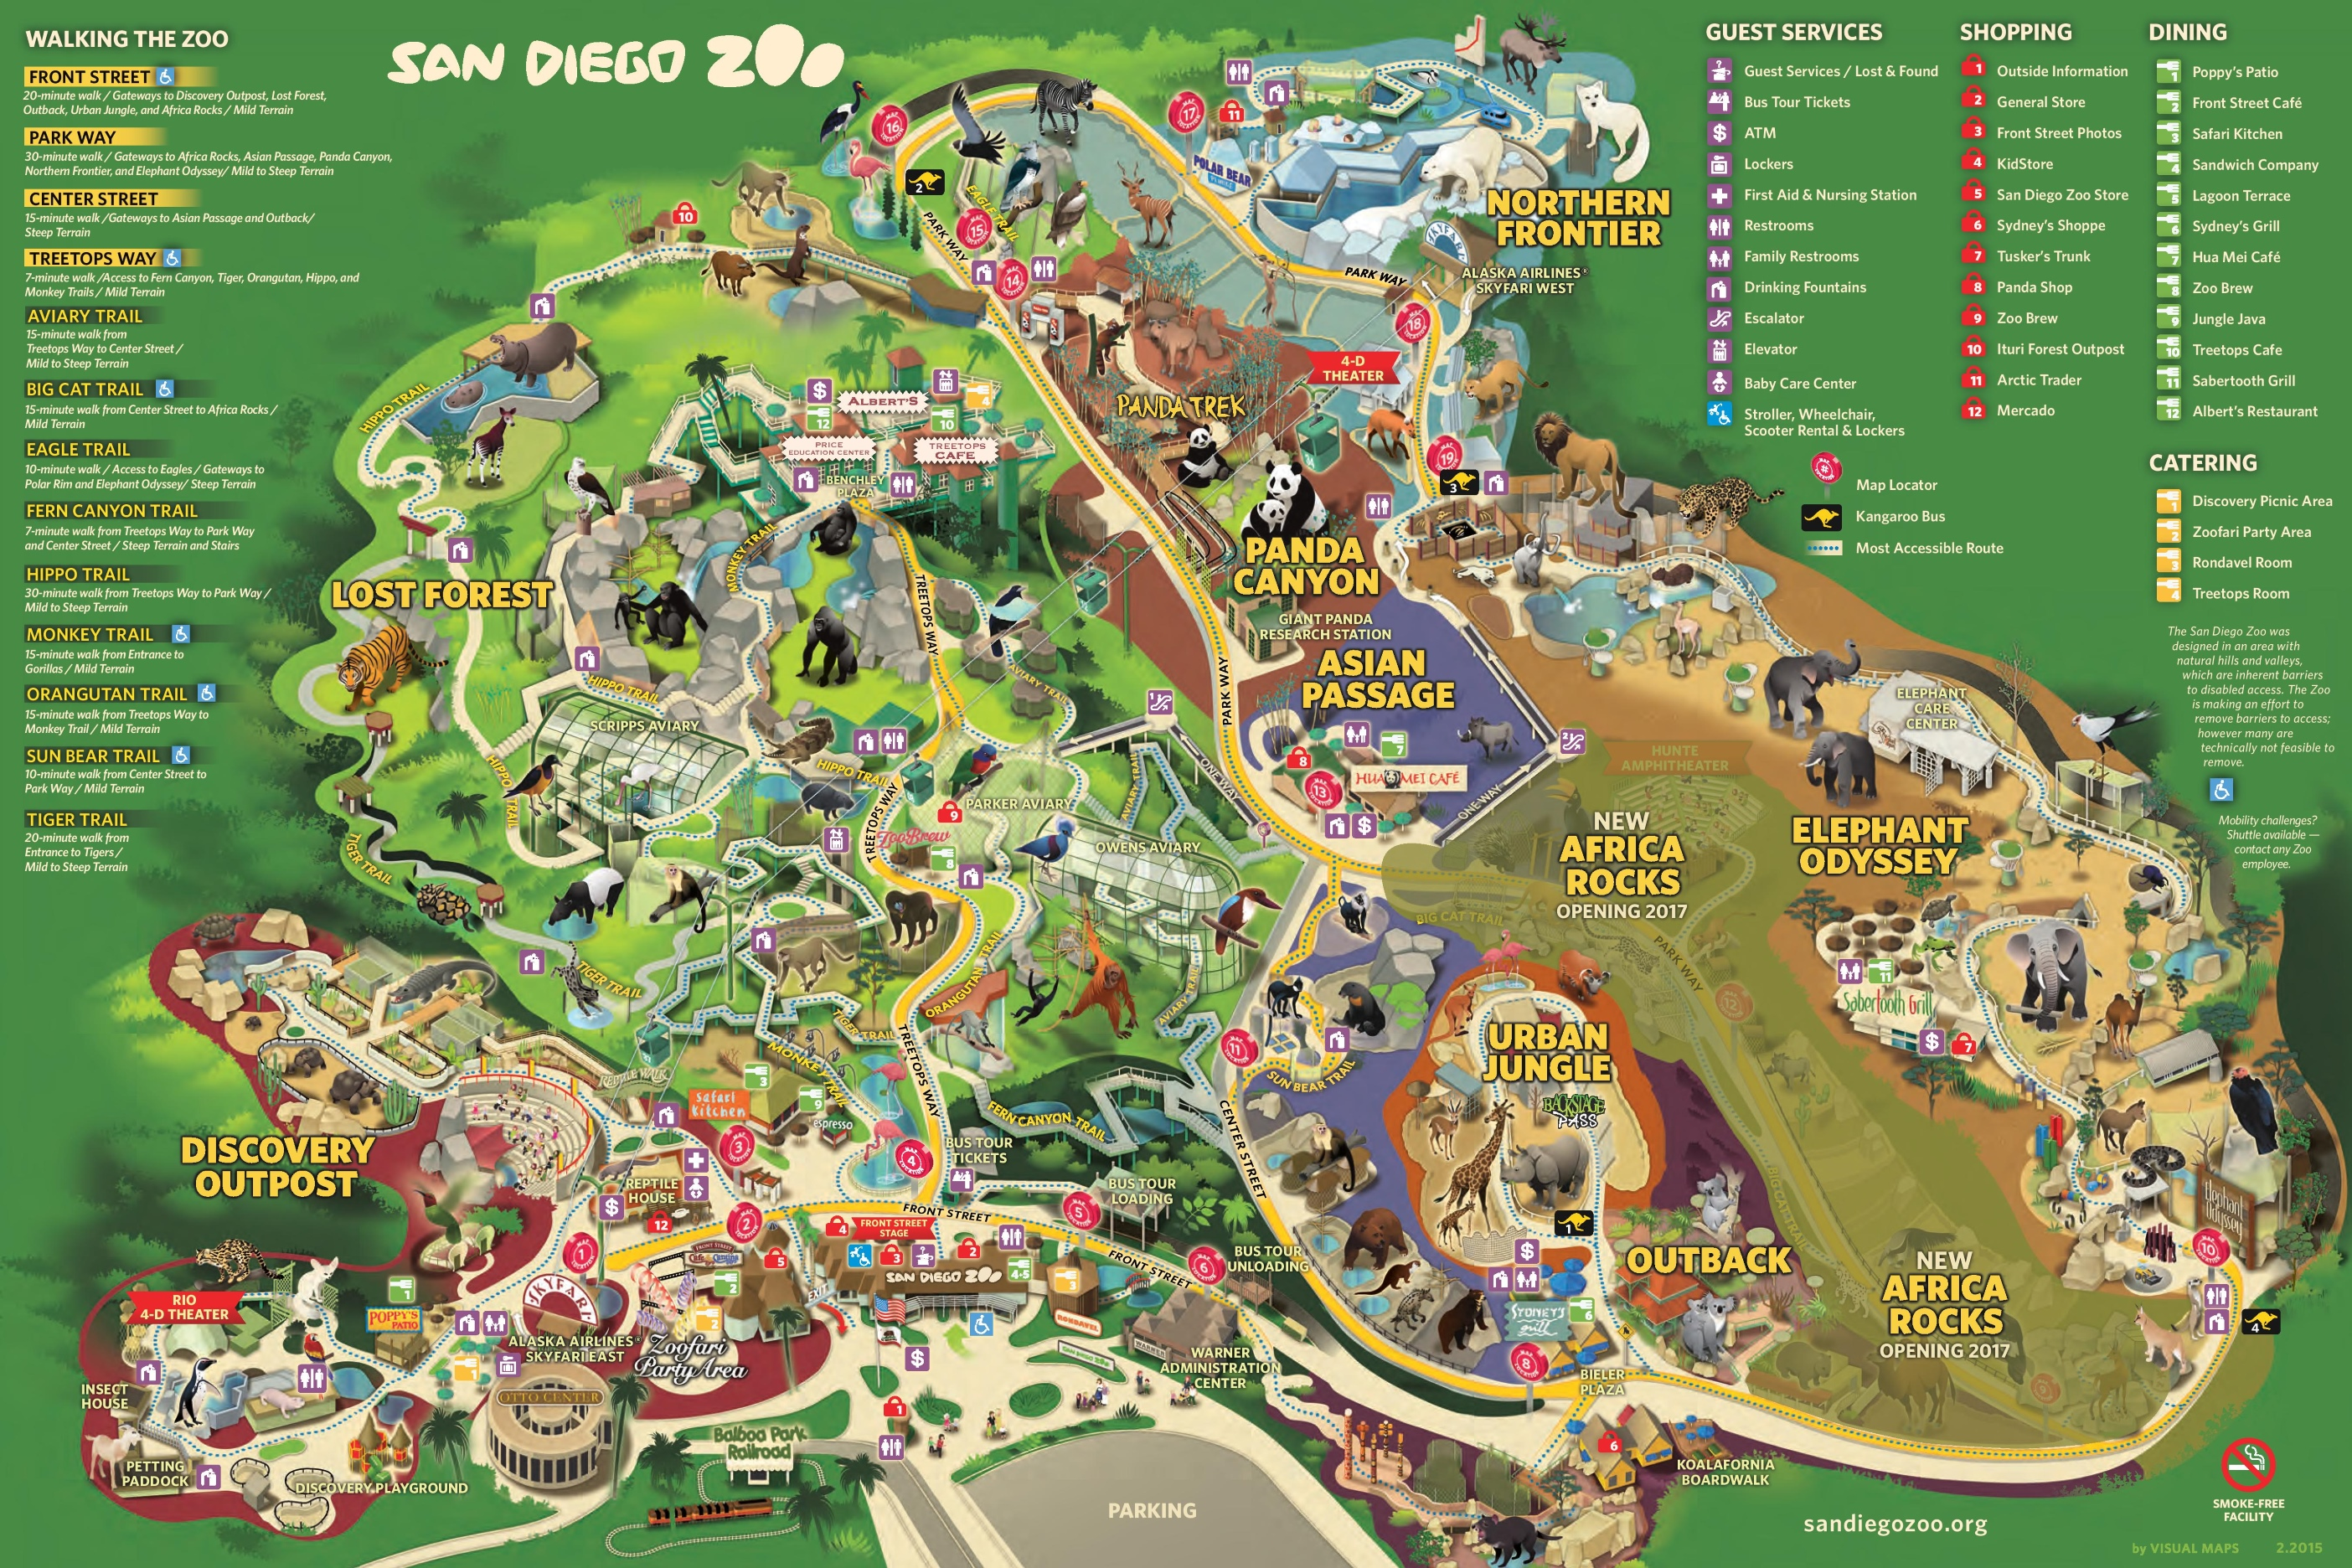 San Diego Zoo Map San Diego Zoo map San Diego Zoo Map